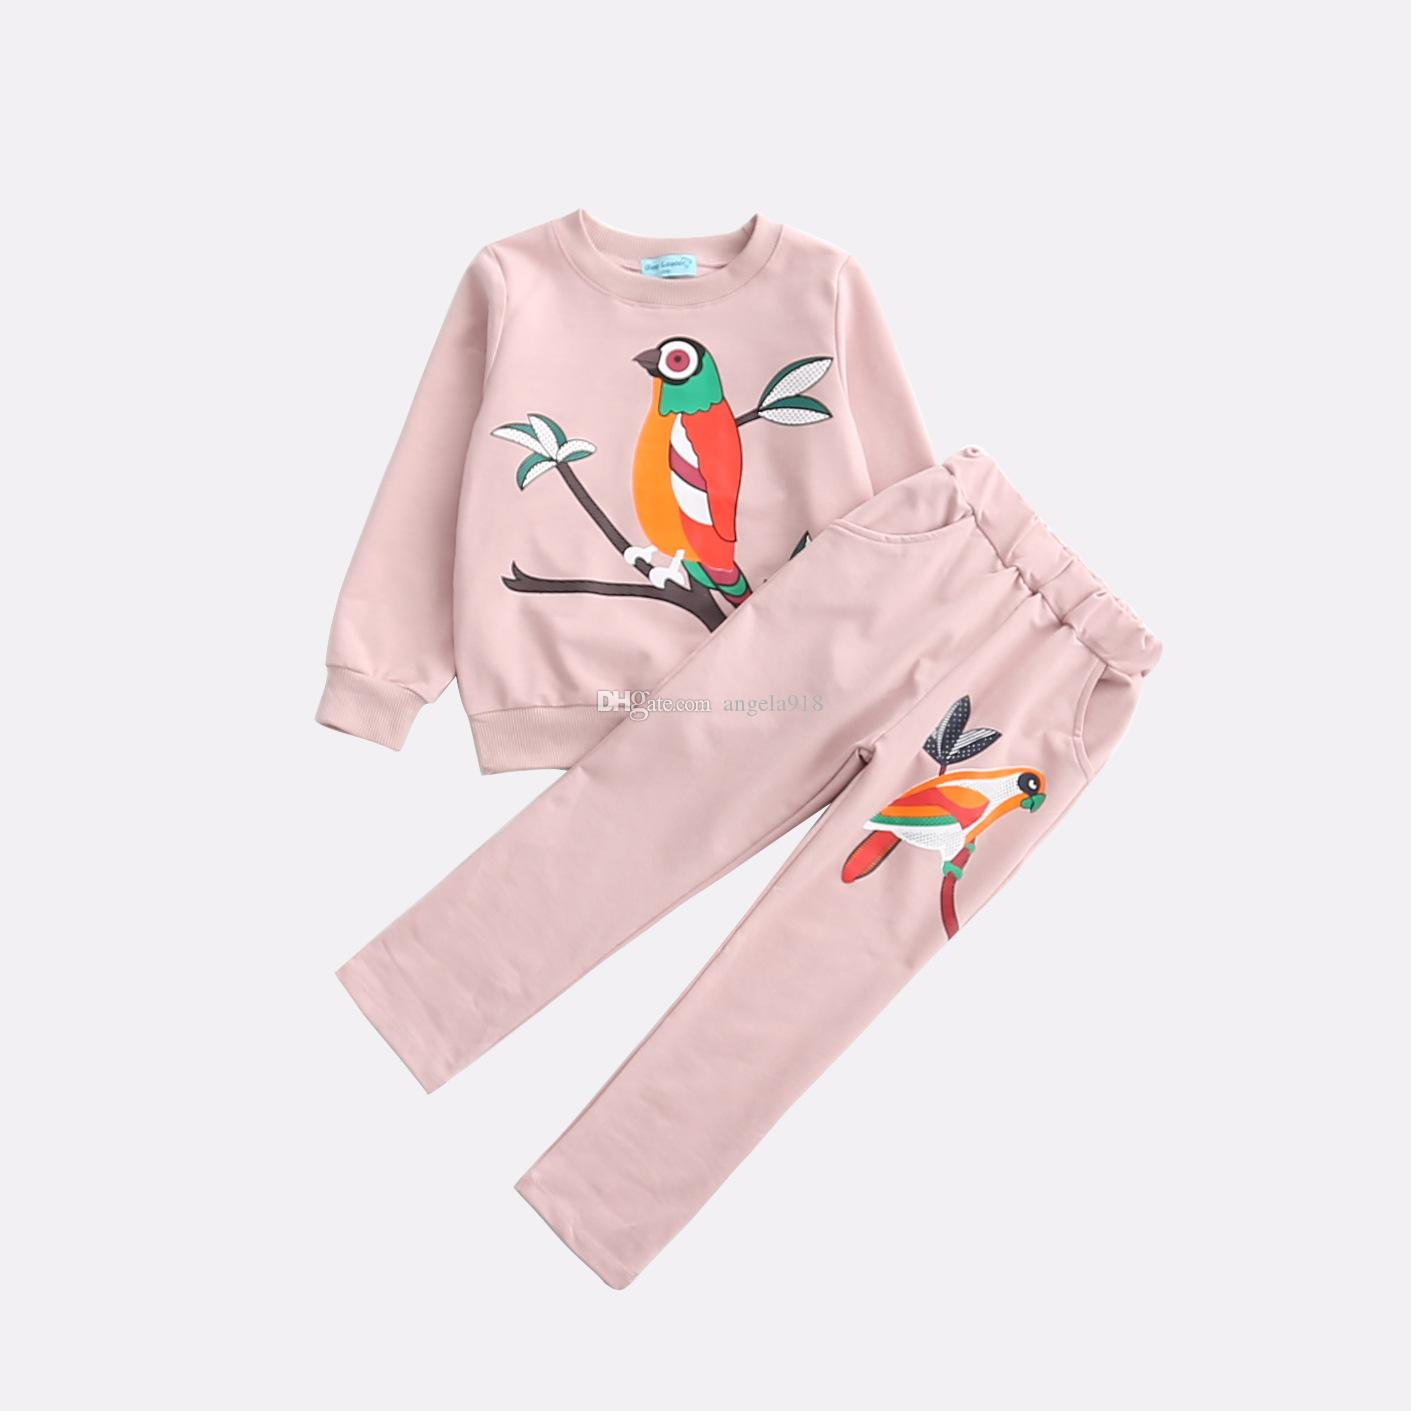 INS hot sell models cotton children's clothing girls cute colorful birds casual trousers sweater suit pink black two optional H028